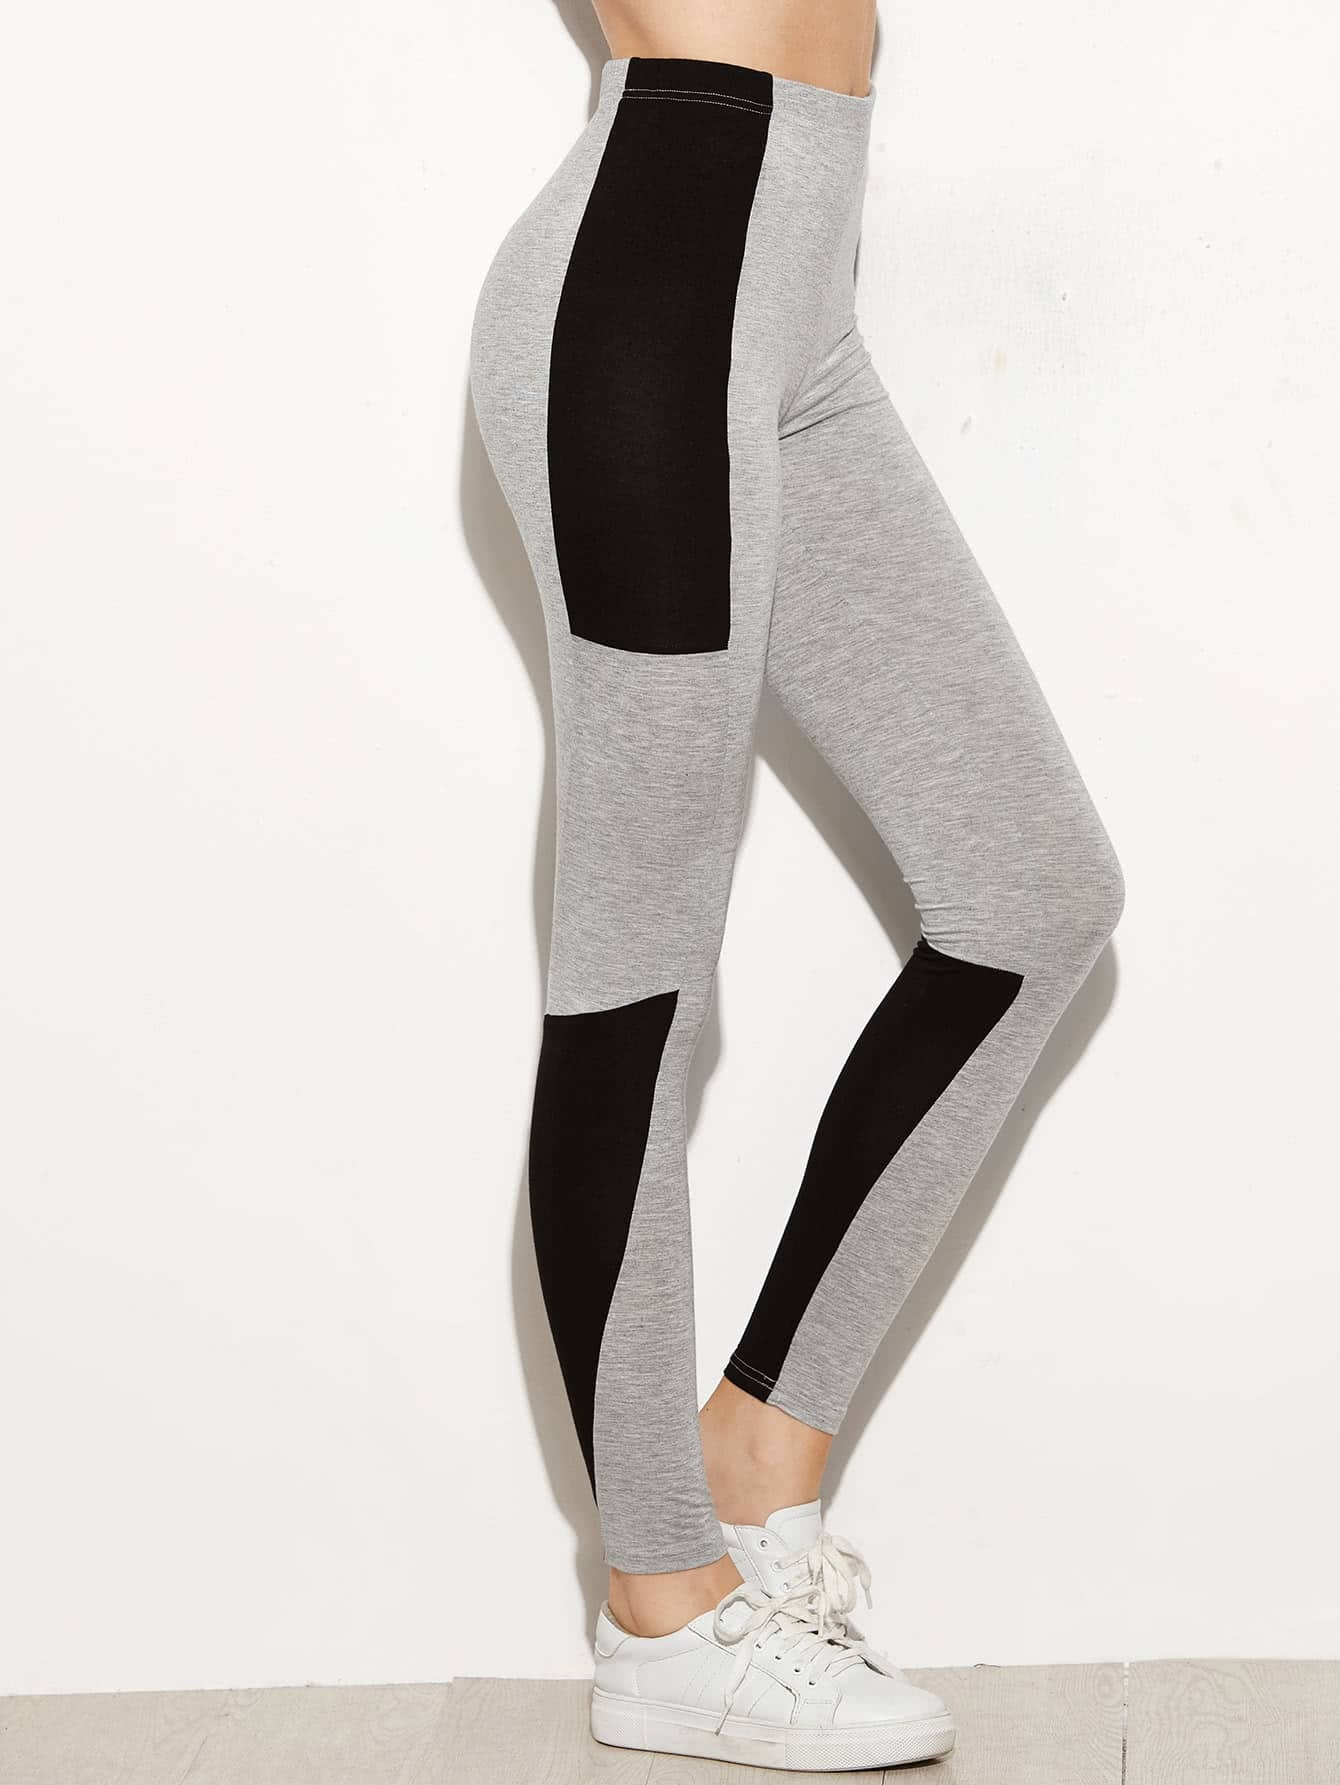 Color Block High Waist Leggings leggings161110701